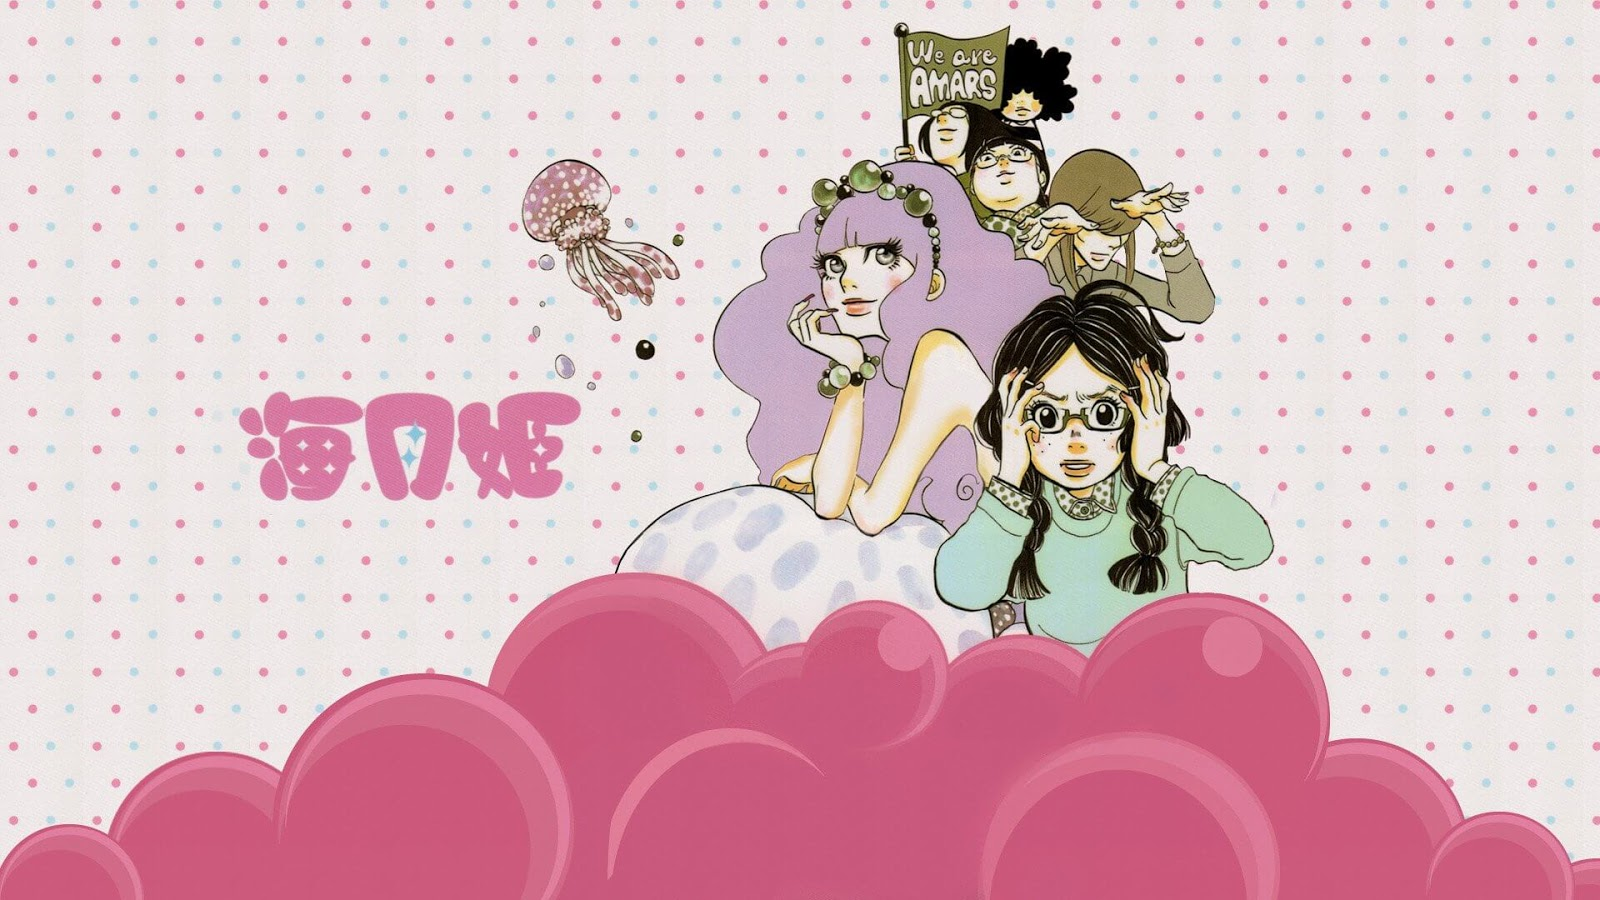 Kuragehime [BD] Sub Indo : Episode 1-11 END | Anime Loker